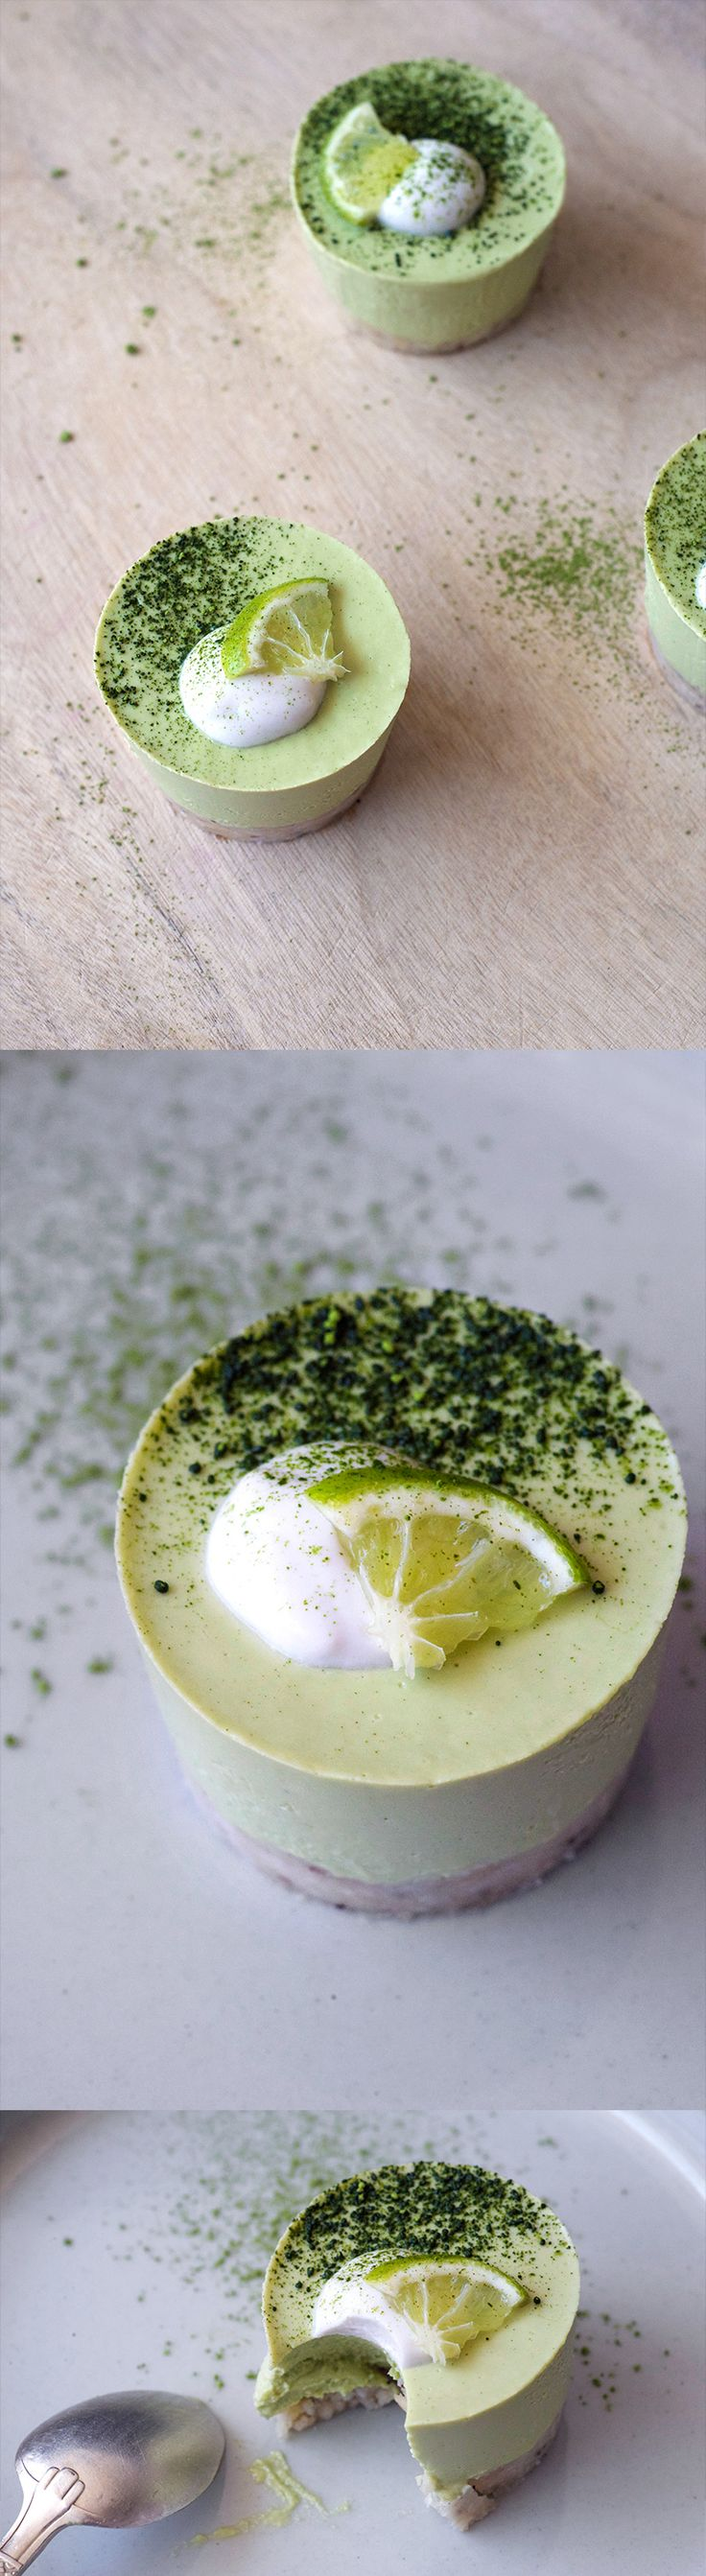 Matcha Key Lime Cheesecake, v + gf